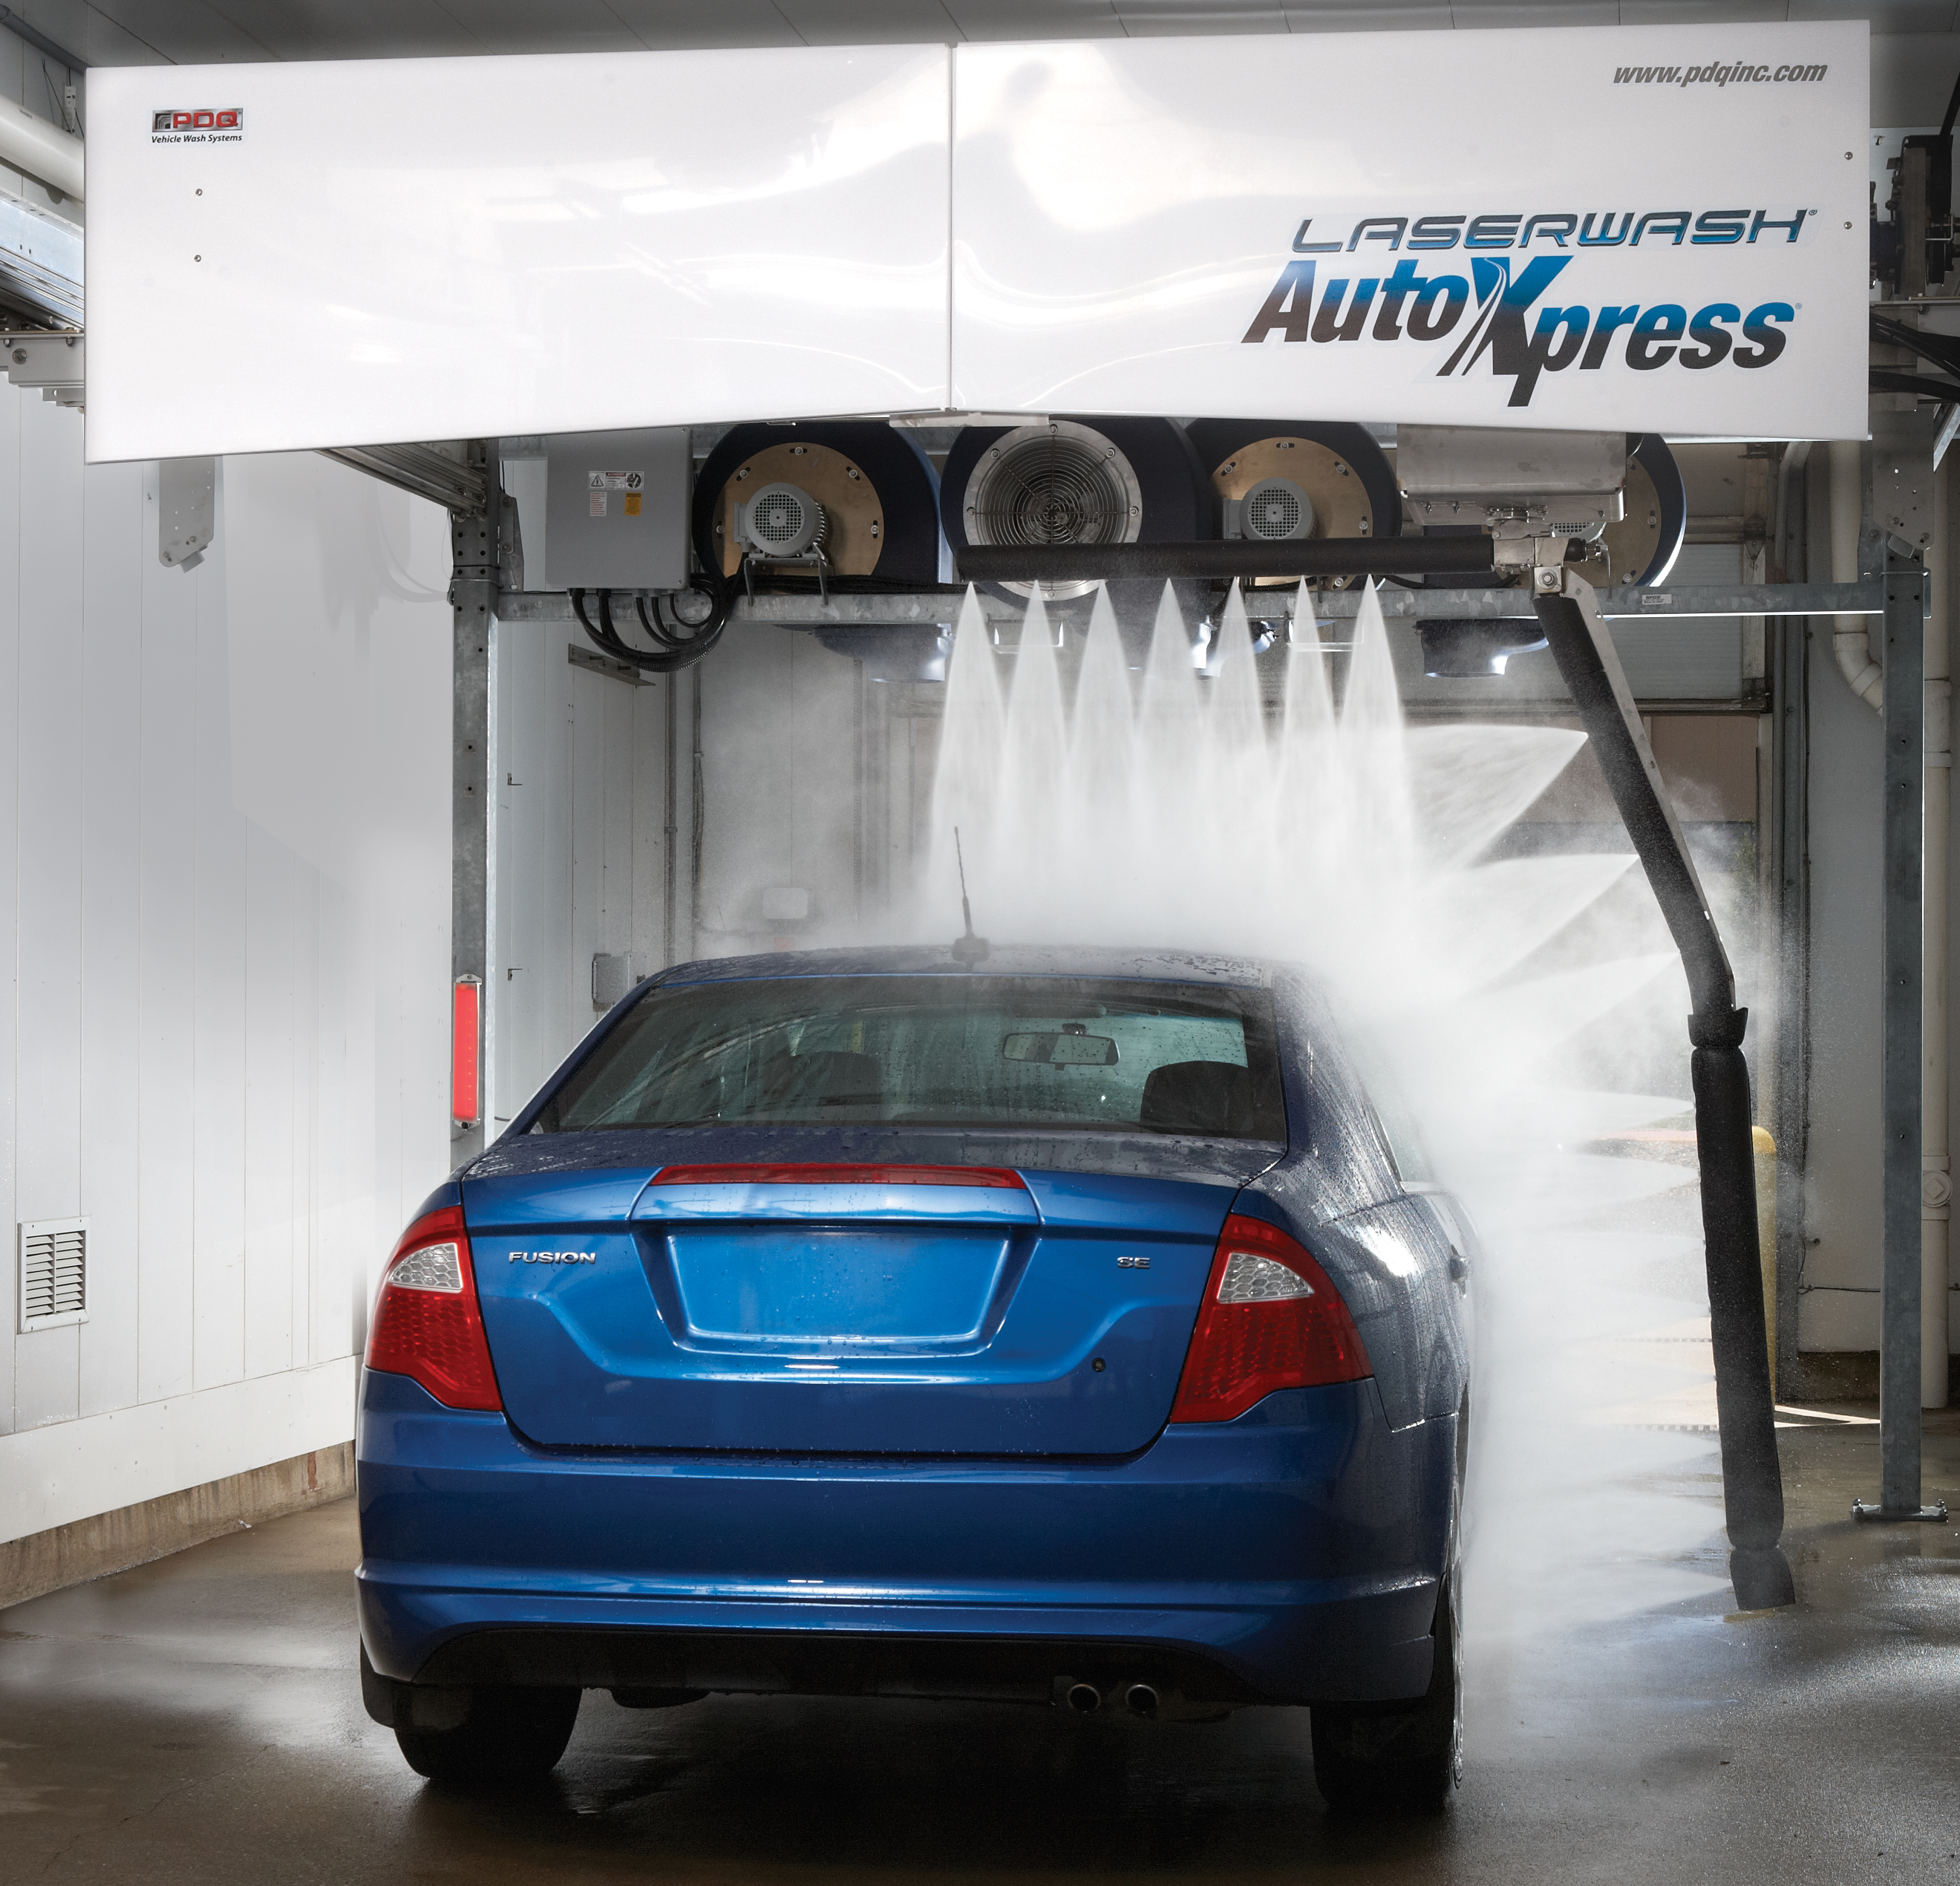 In Bay Automatic Car Wash